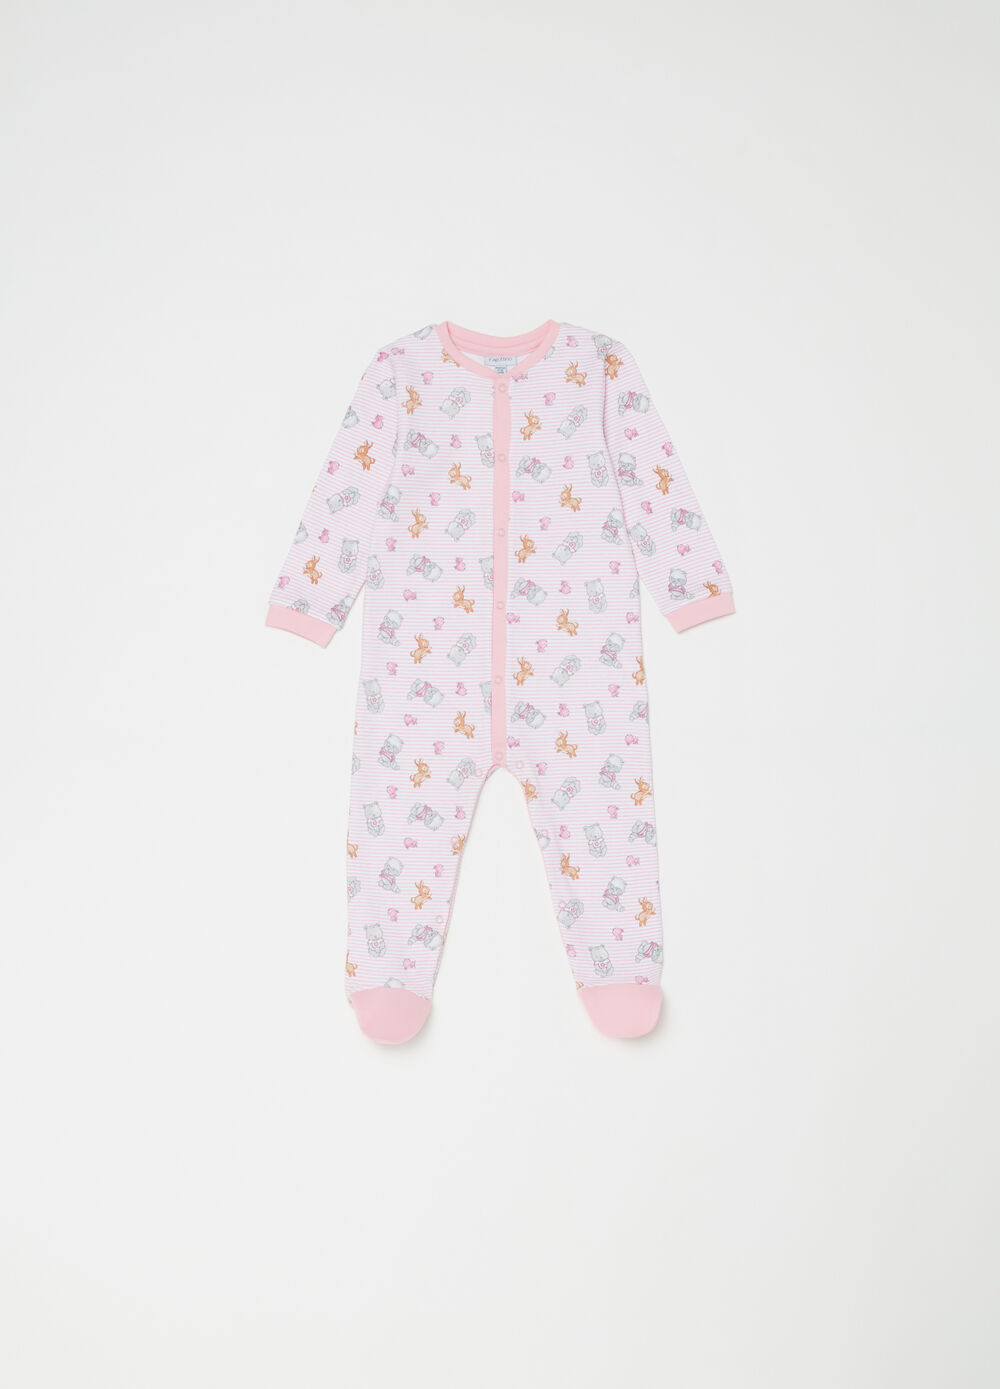 Patterned sleepsuit in 100% cotton